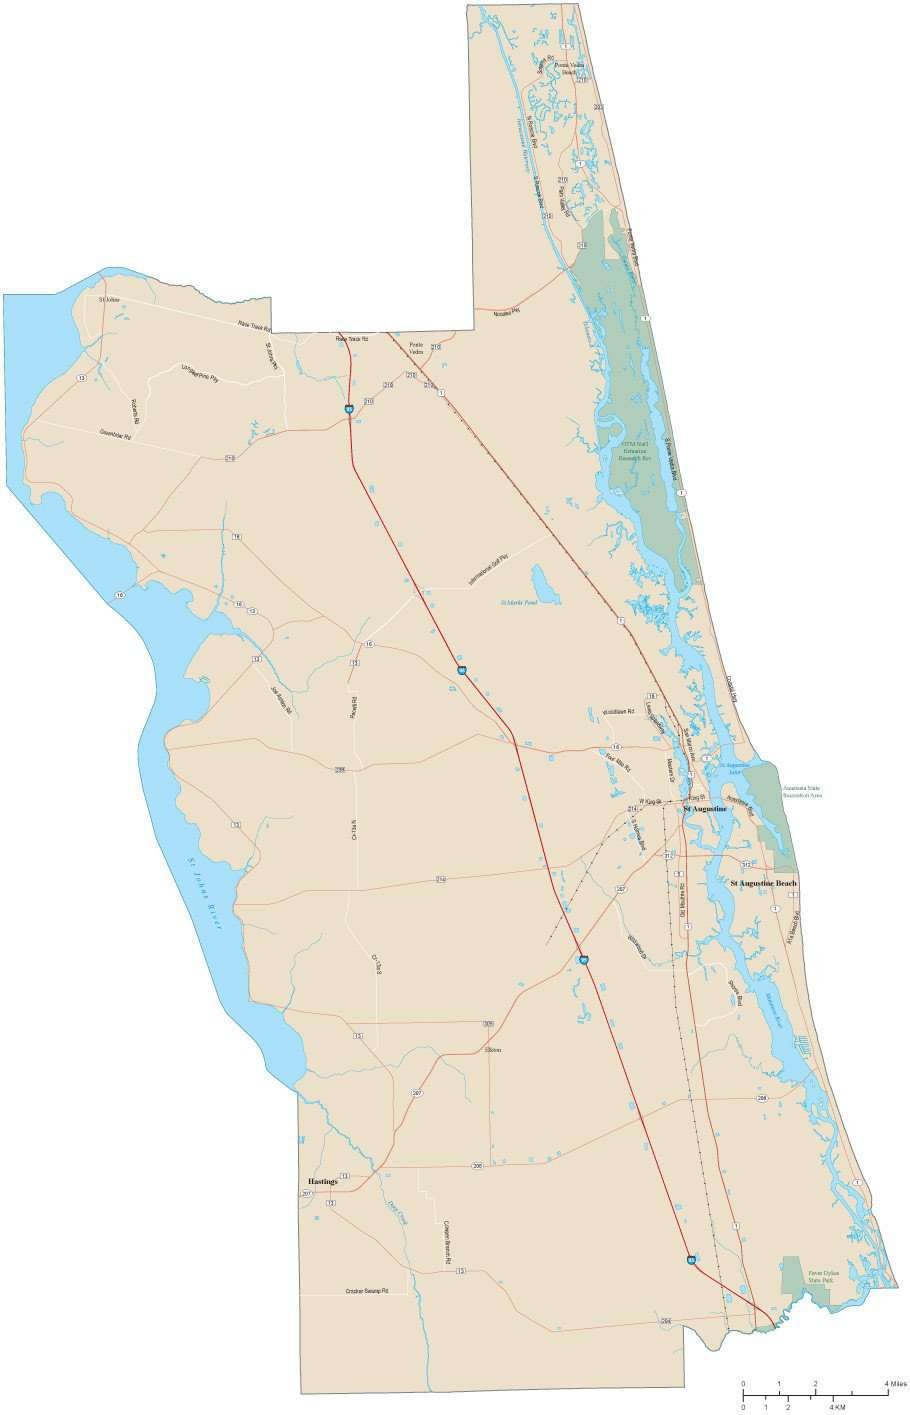 St Johns Florida Map.St Johns County Map With Local Streets In Adobe Illustrator Vector